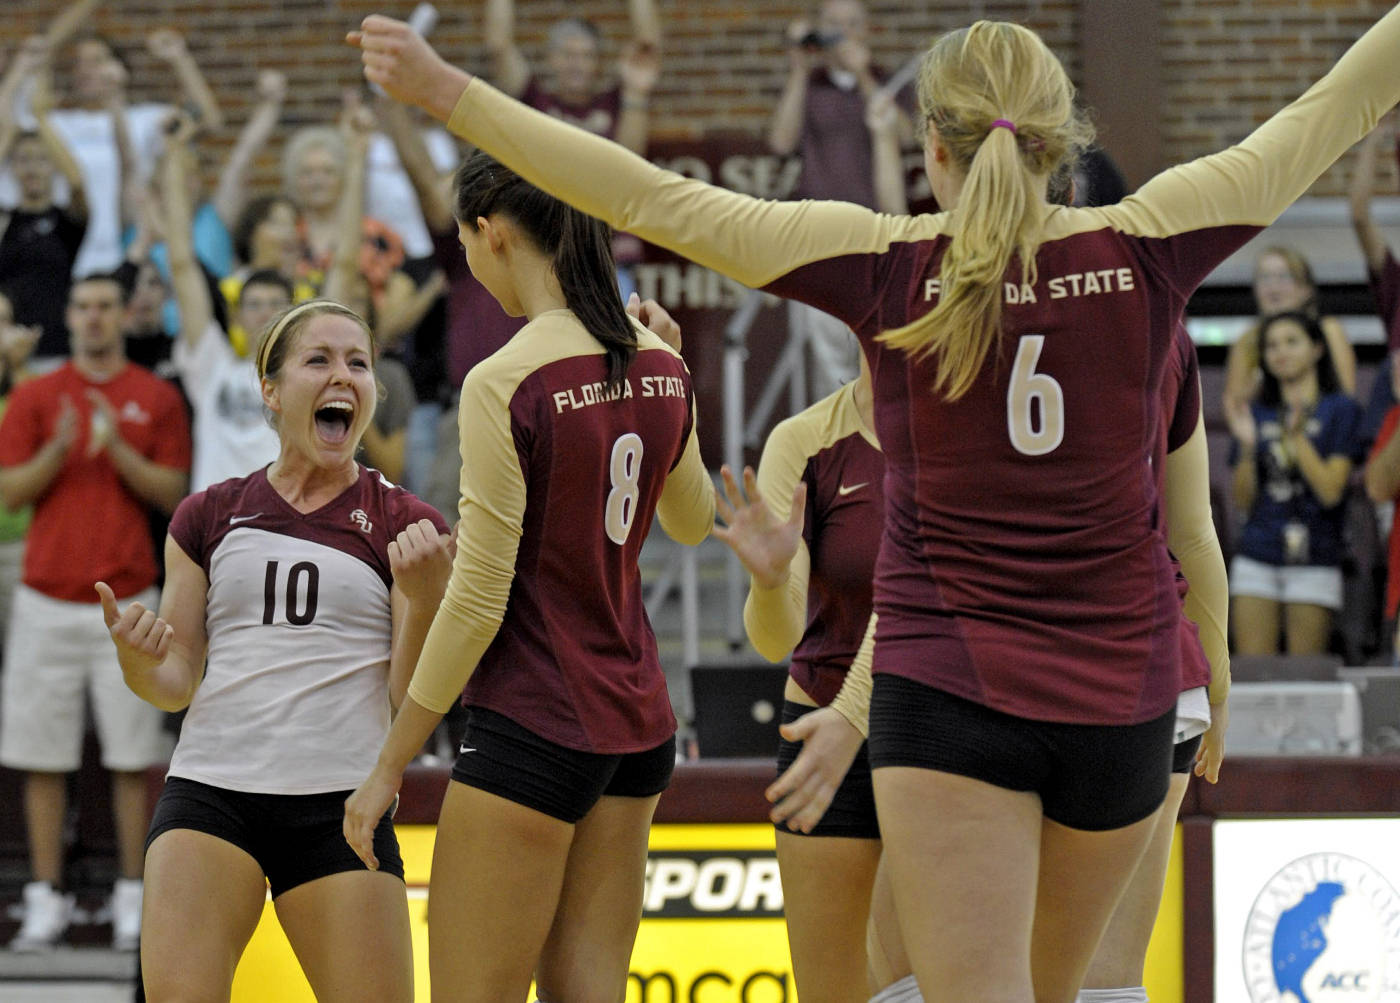 Another match, another victory for a Seminoles team that won 16 ACC games in a row.